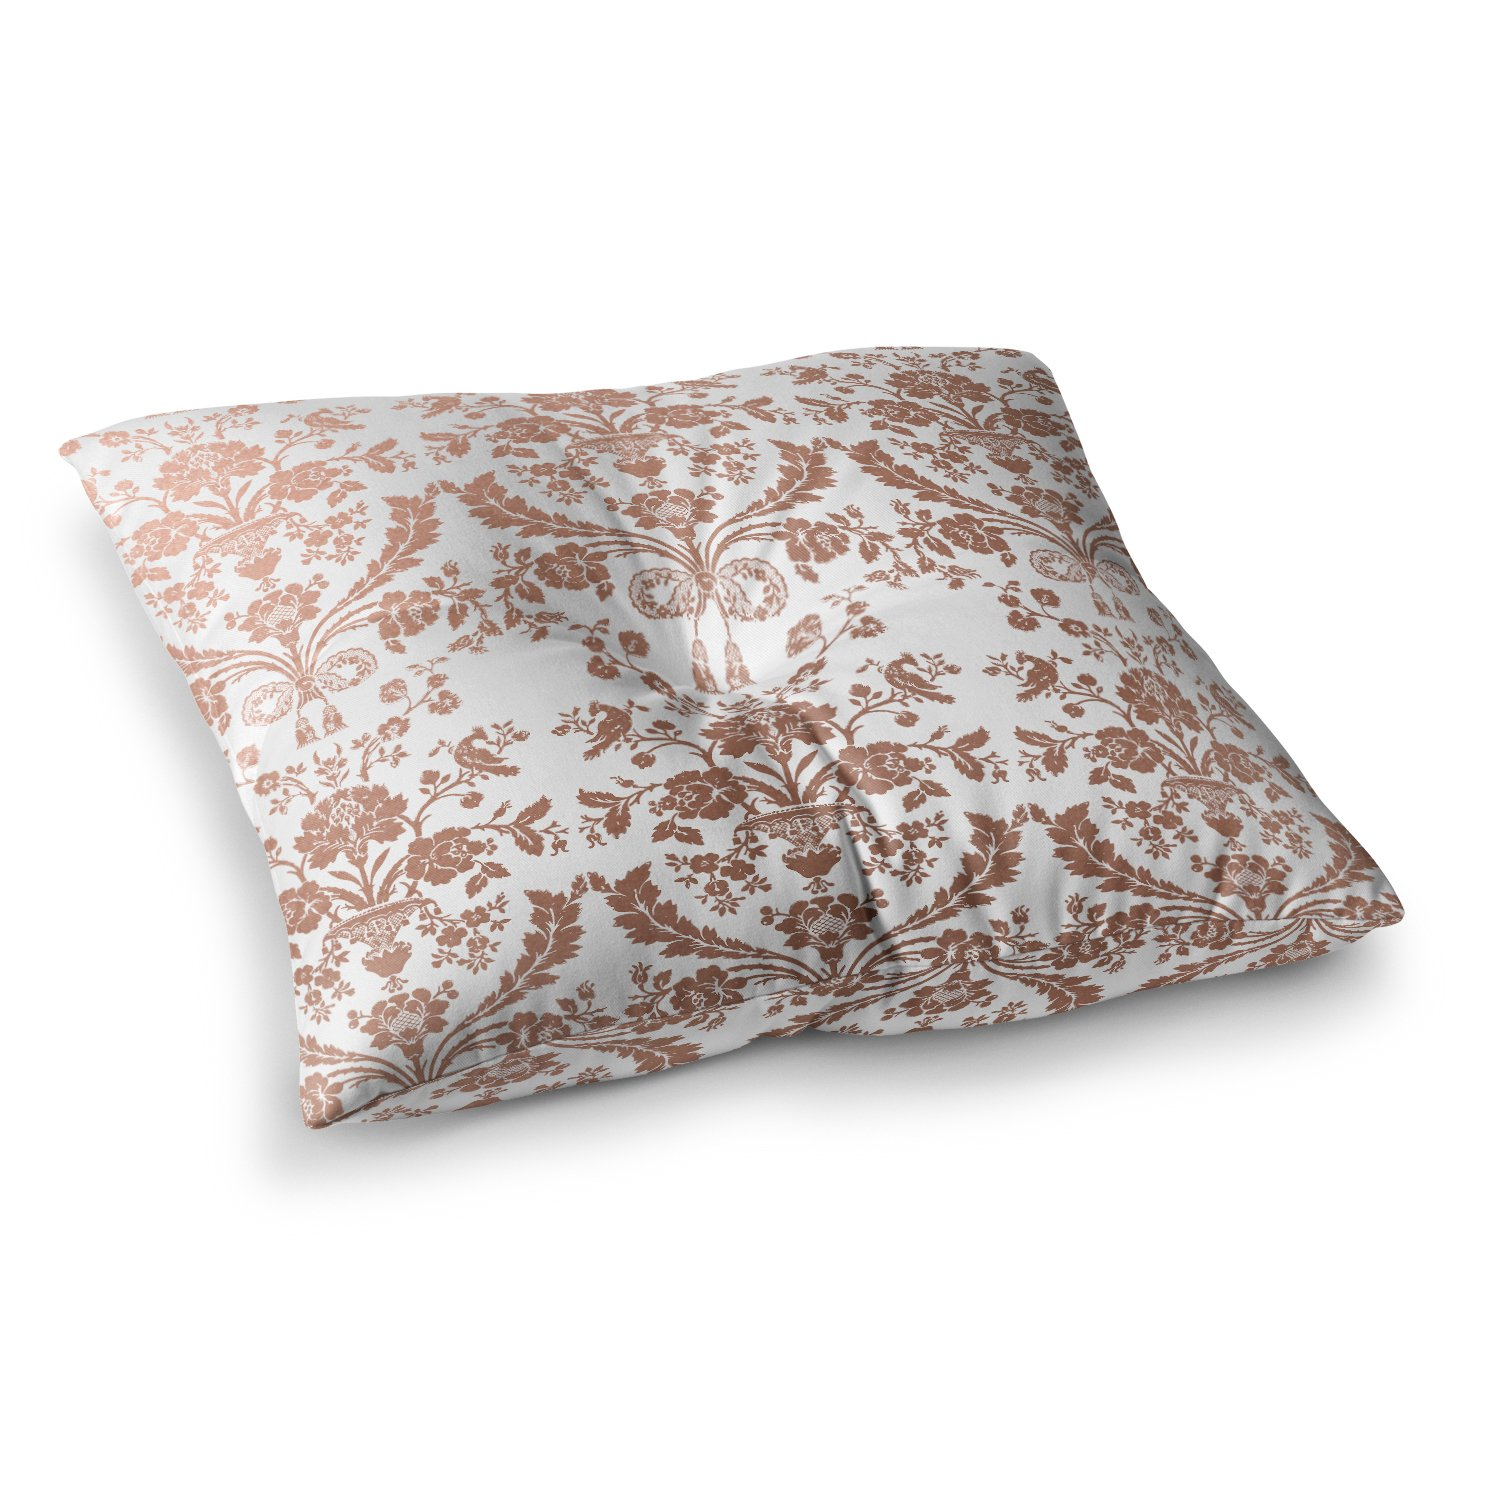 Kess InHouse Kess Original Baroque Rose Gold Abstract Floral, 23' x 23' Square Floor Pillow